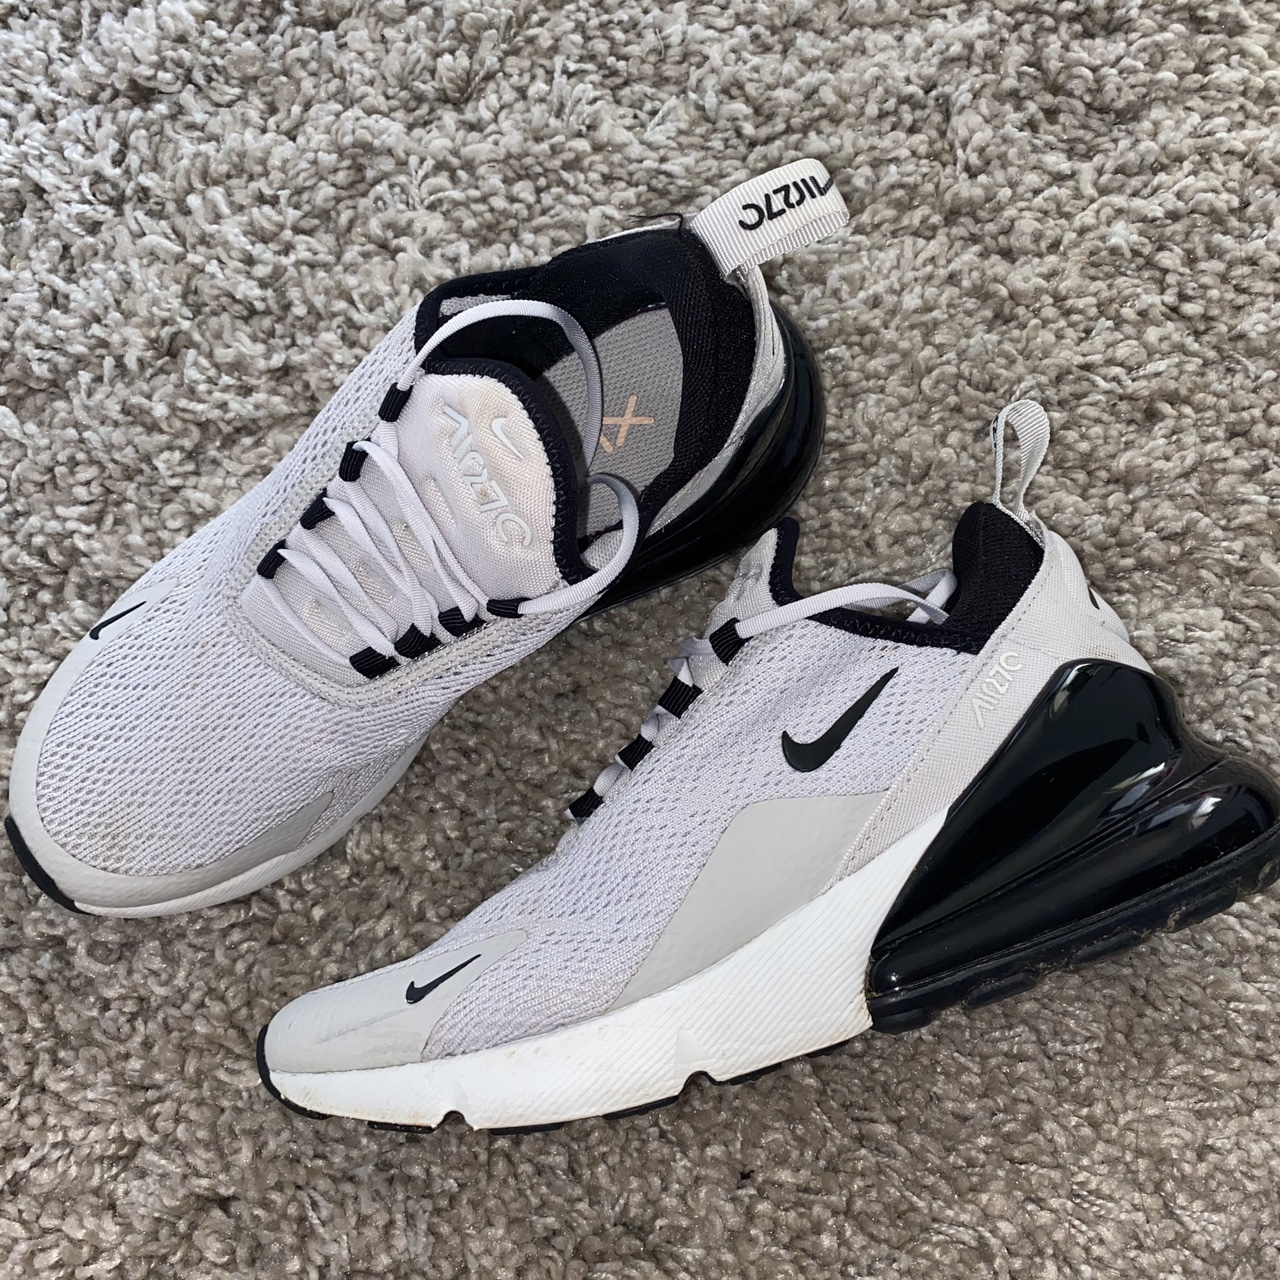 Women's Nike Air Max 270, size 4, Still in a great...